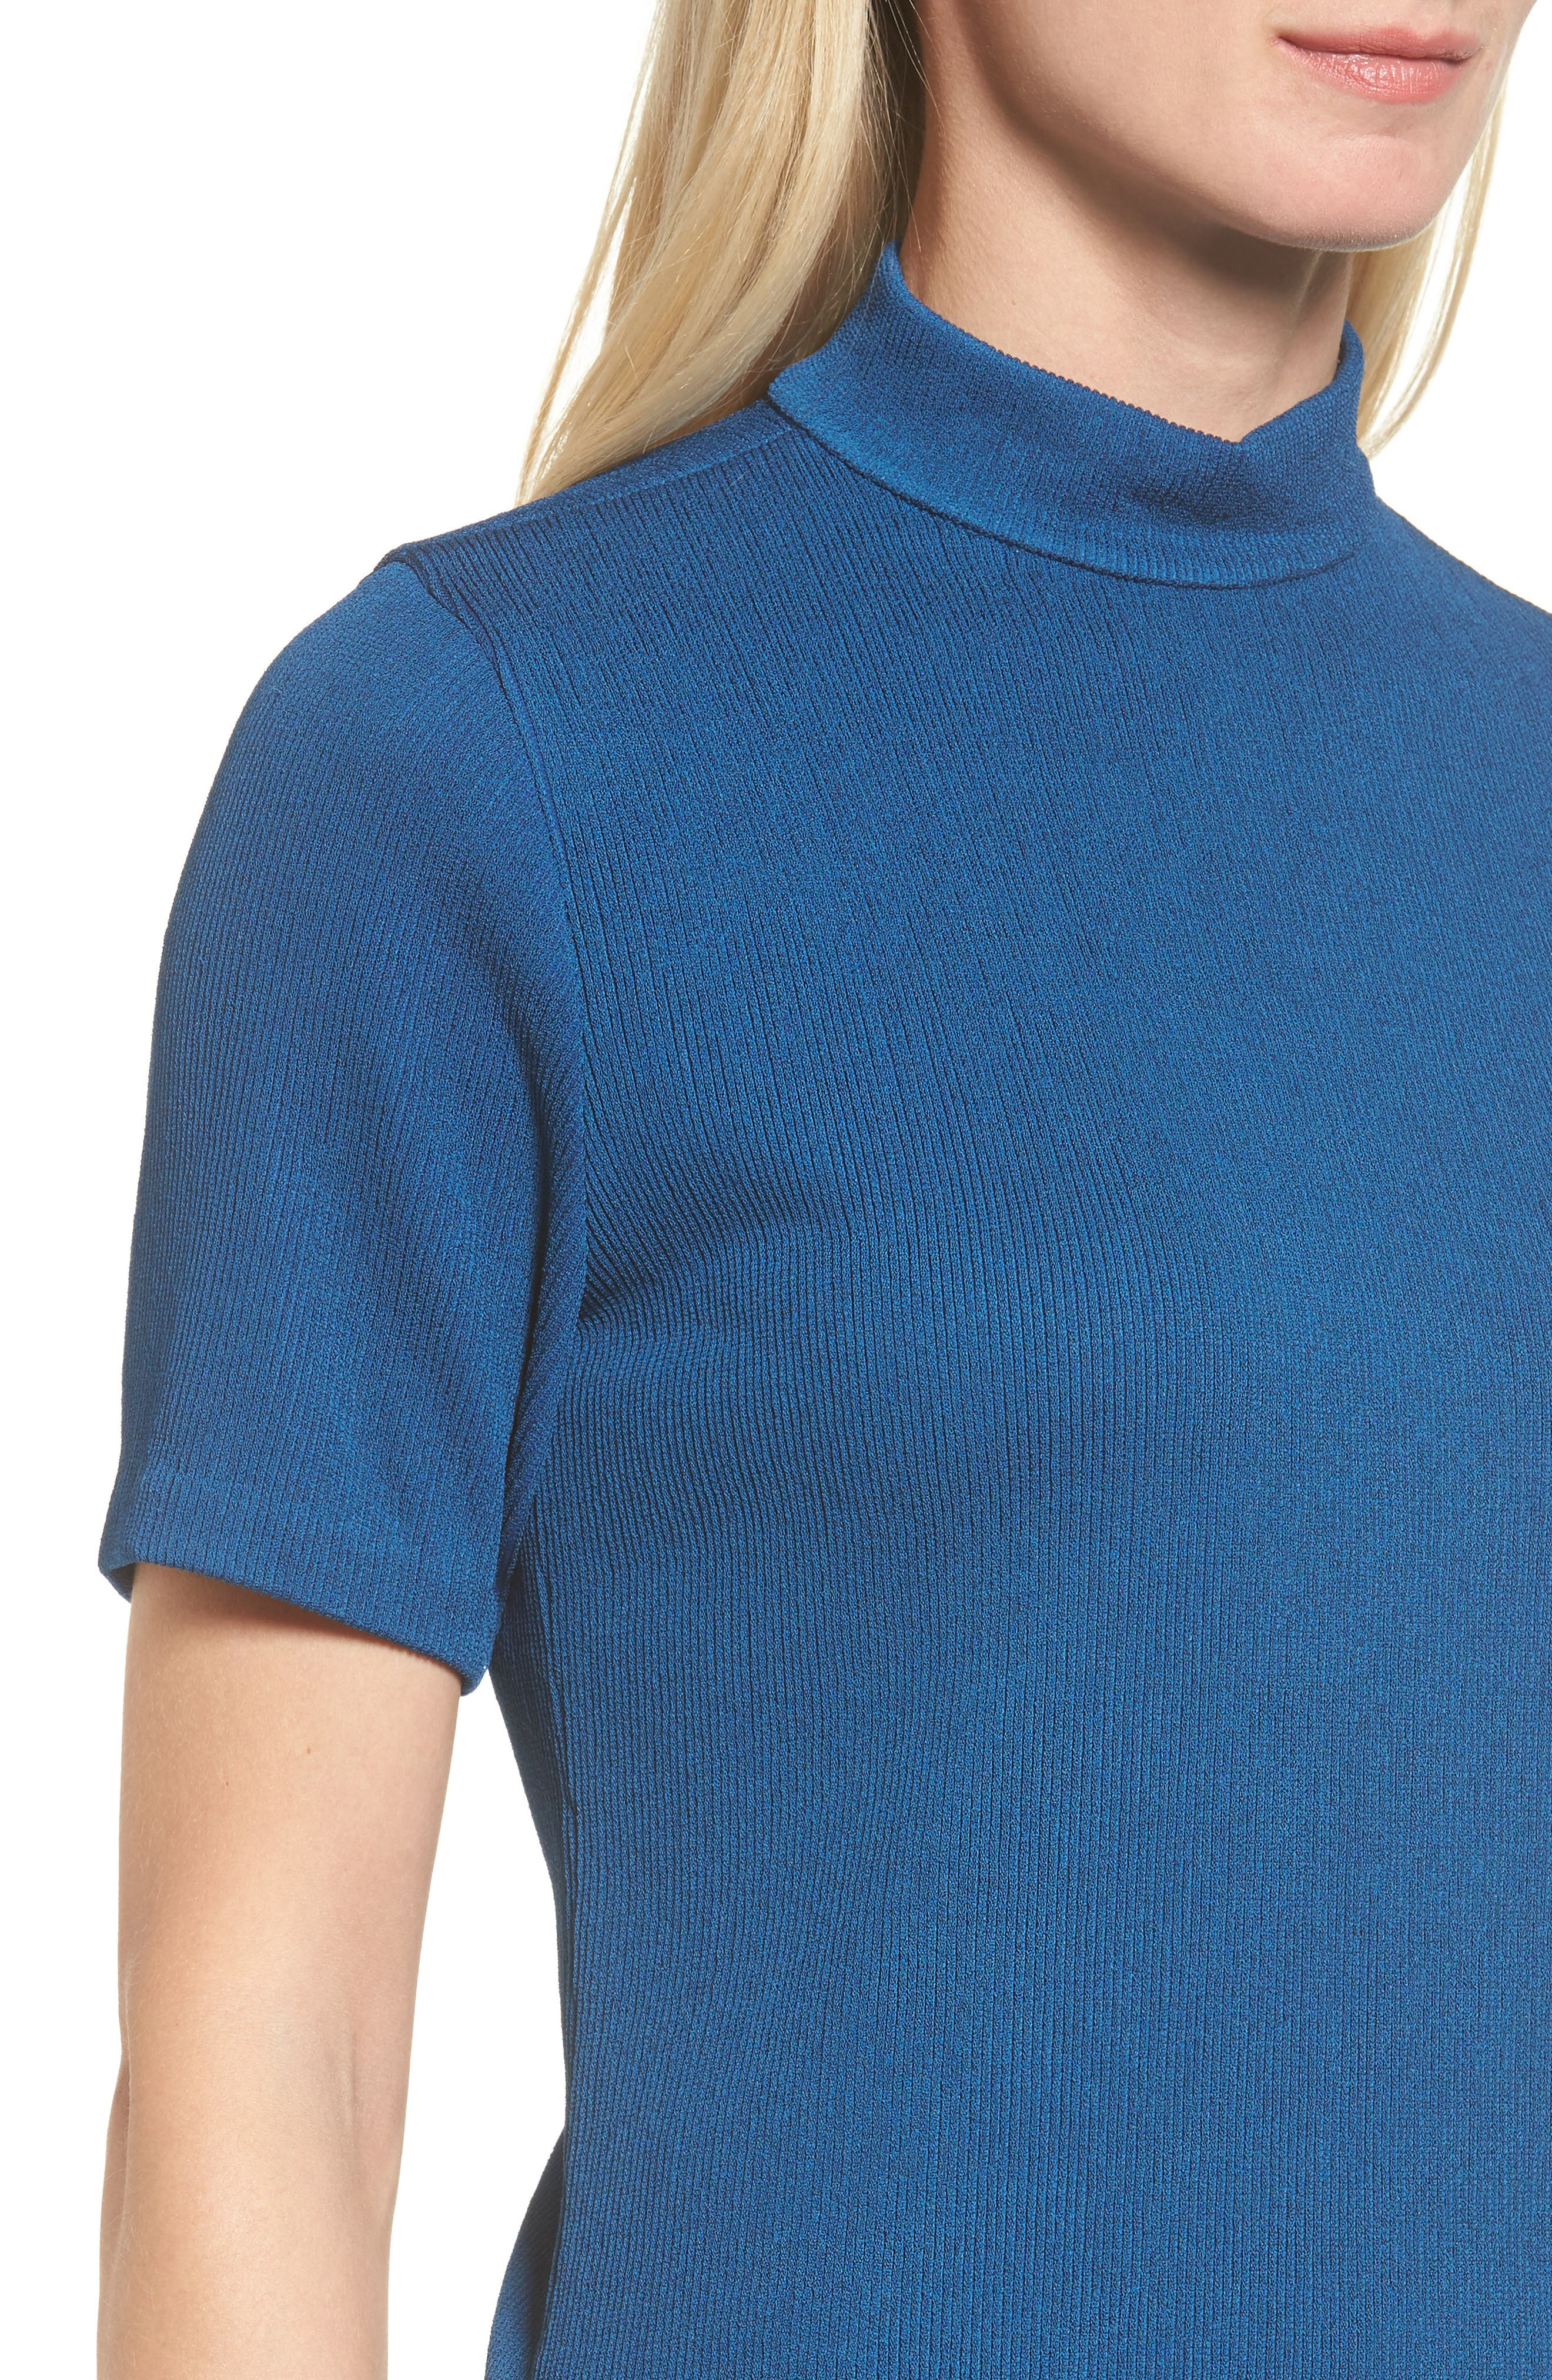 Etelina Sweater,                             Alternate thumbnail 4, color,                             Gentian Blue